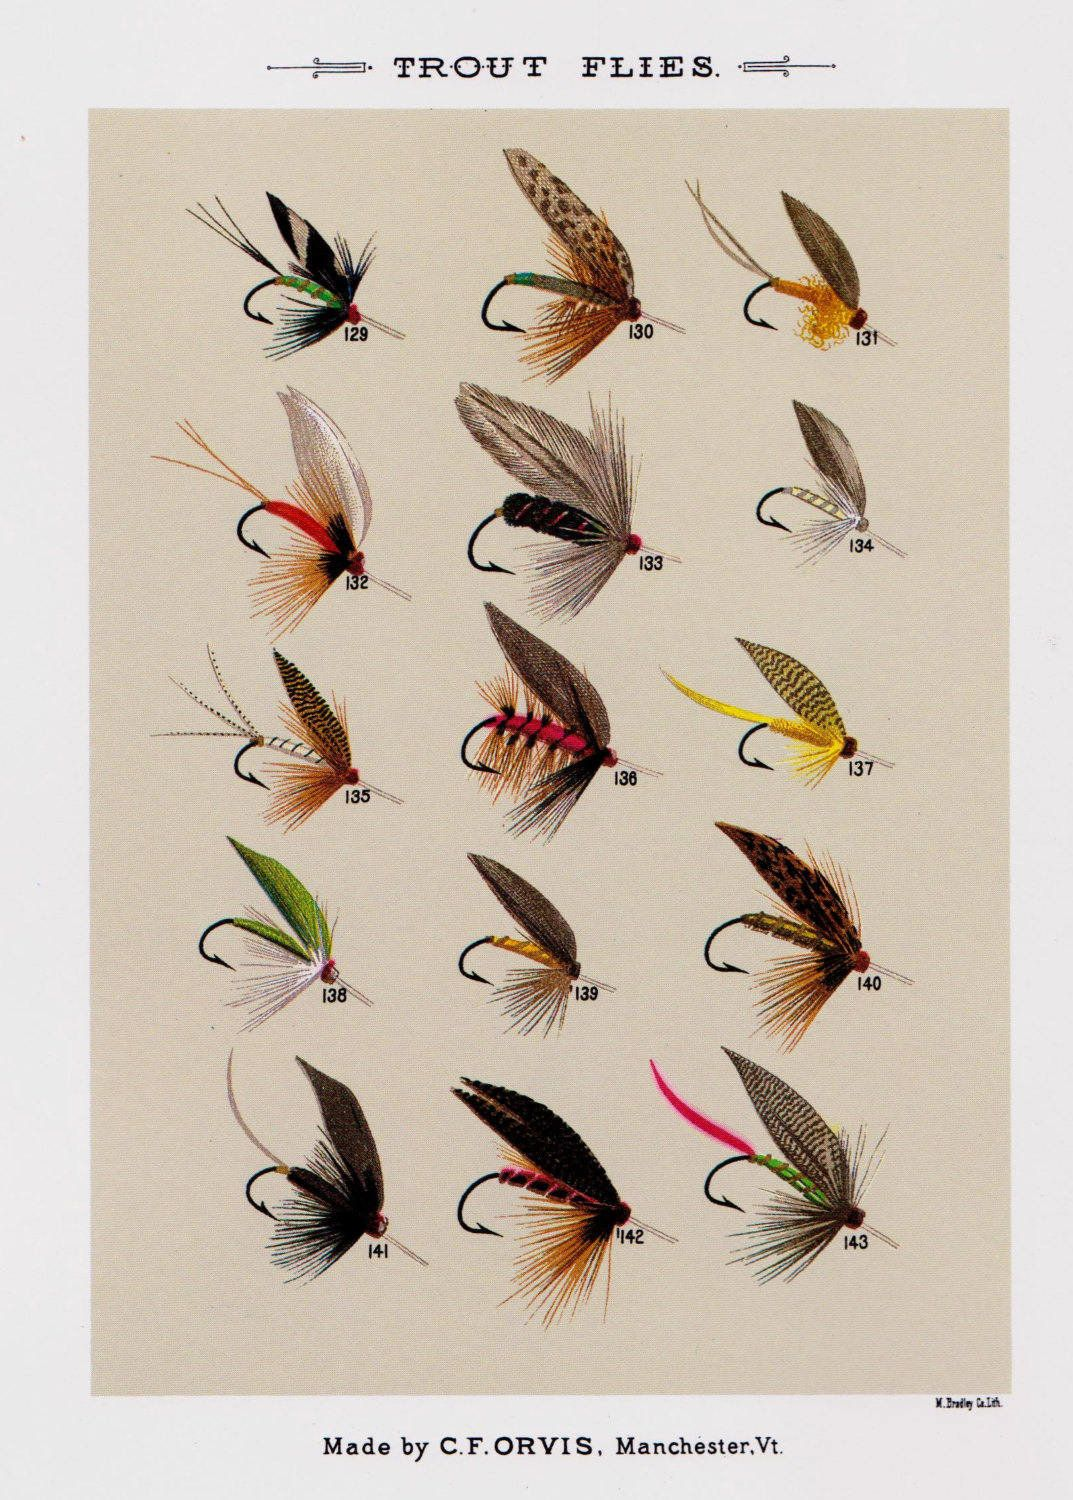 Vintage Fly Fishing Lure Print Trout Flies Beach House Decor Cabin Wall Art Gift For Fisherman Dad Brother 3802p By Plaindealing On Etsy